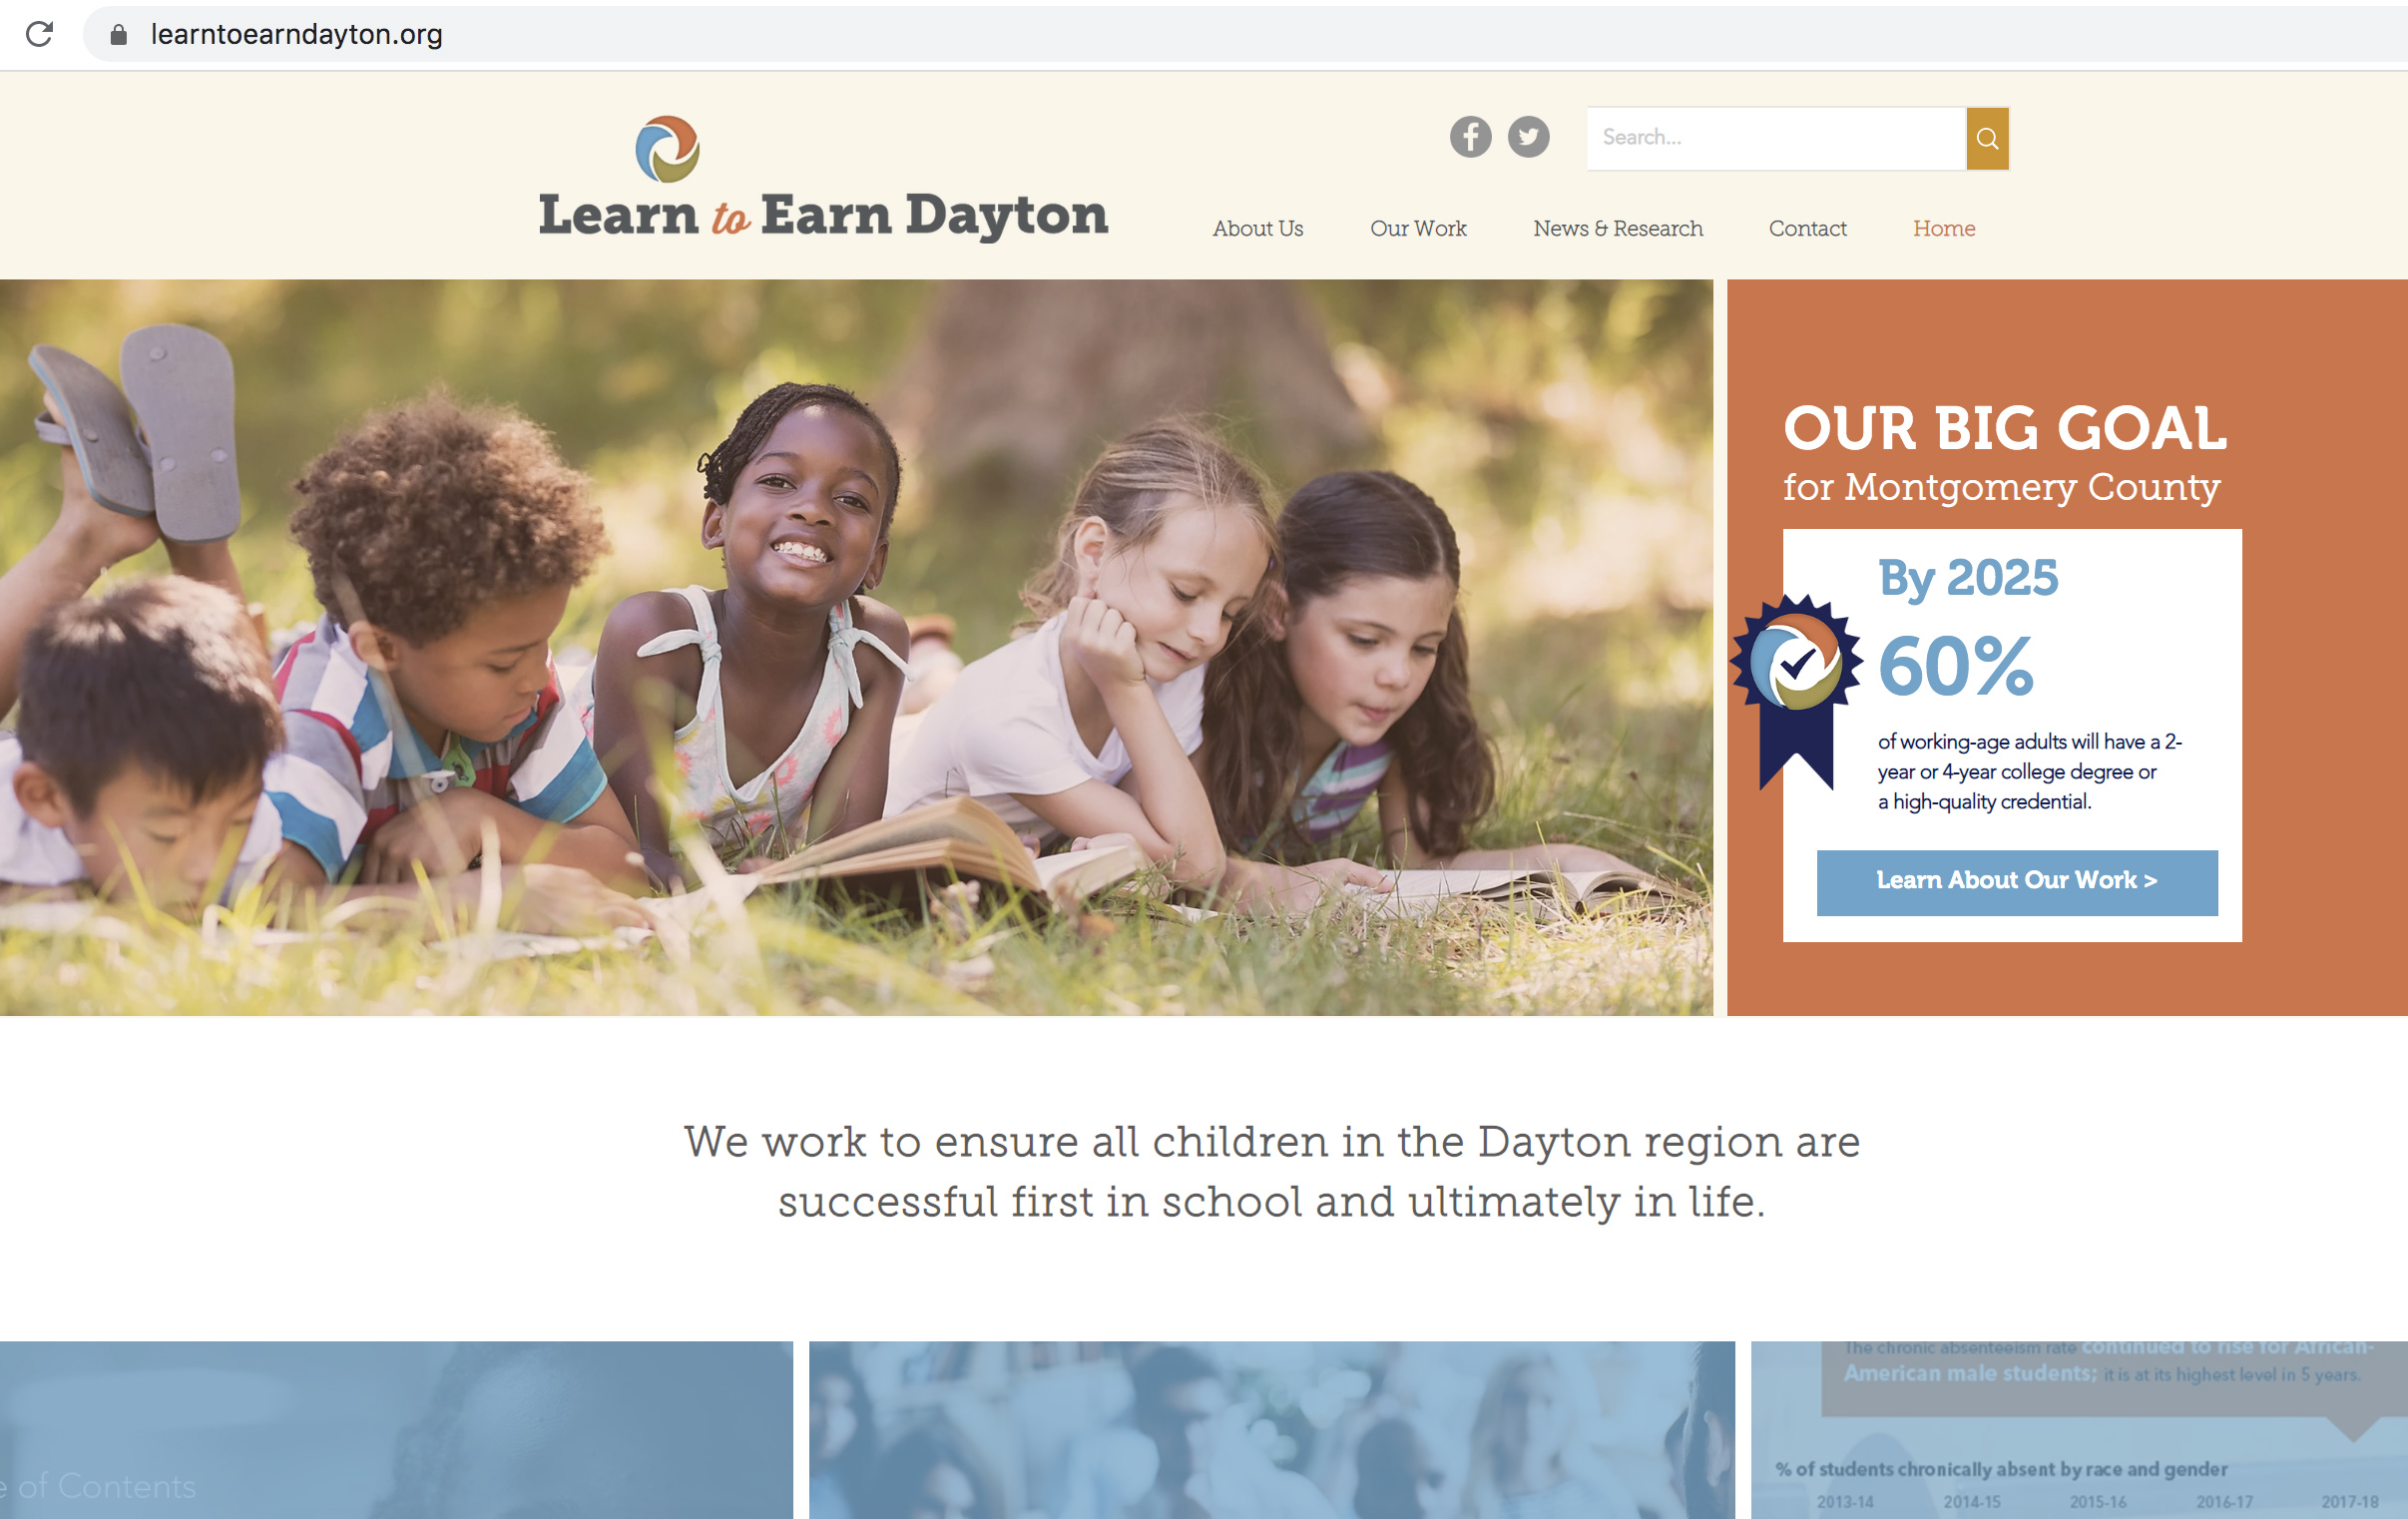 Website: Learn to Earn Dayton